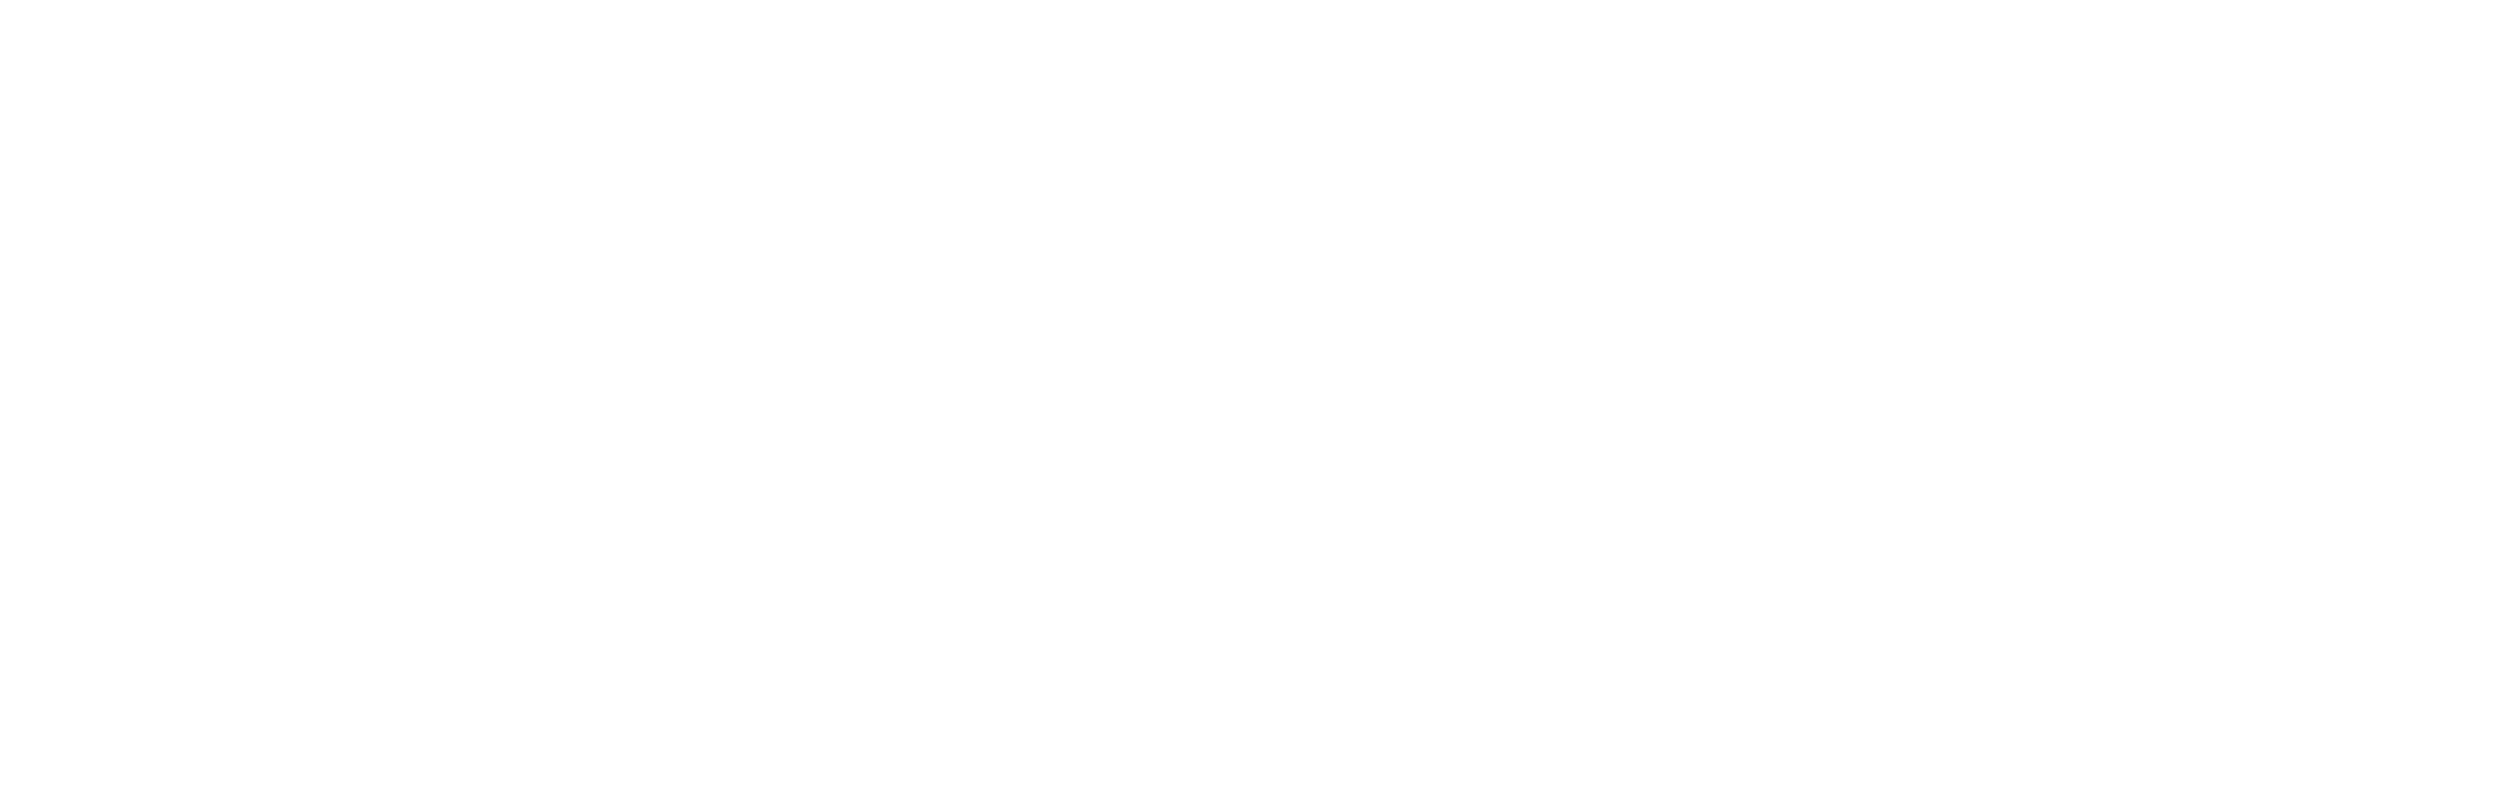 Janitorial Manager Logo